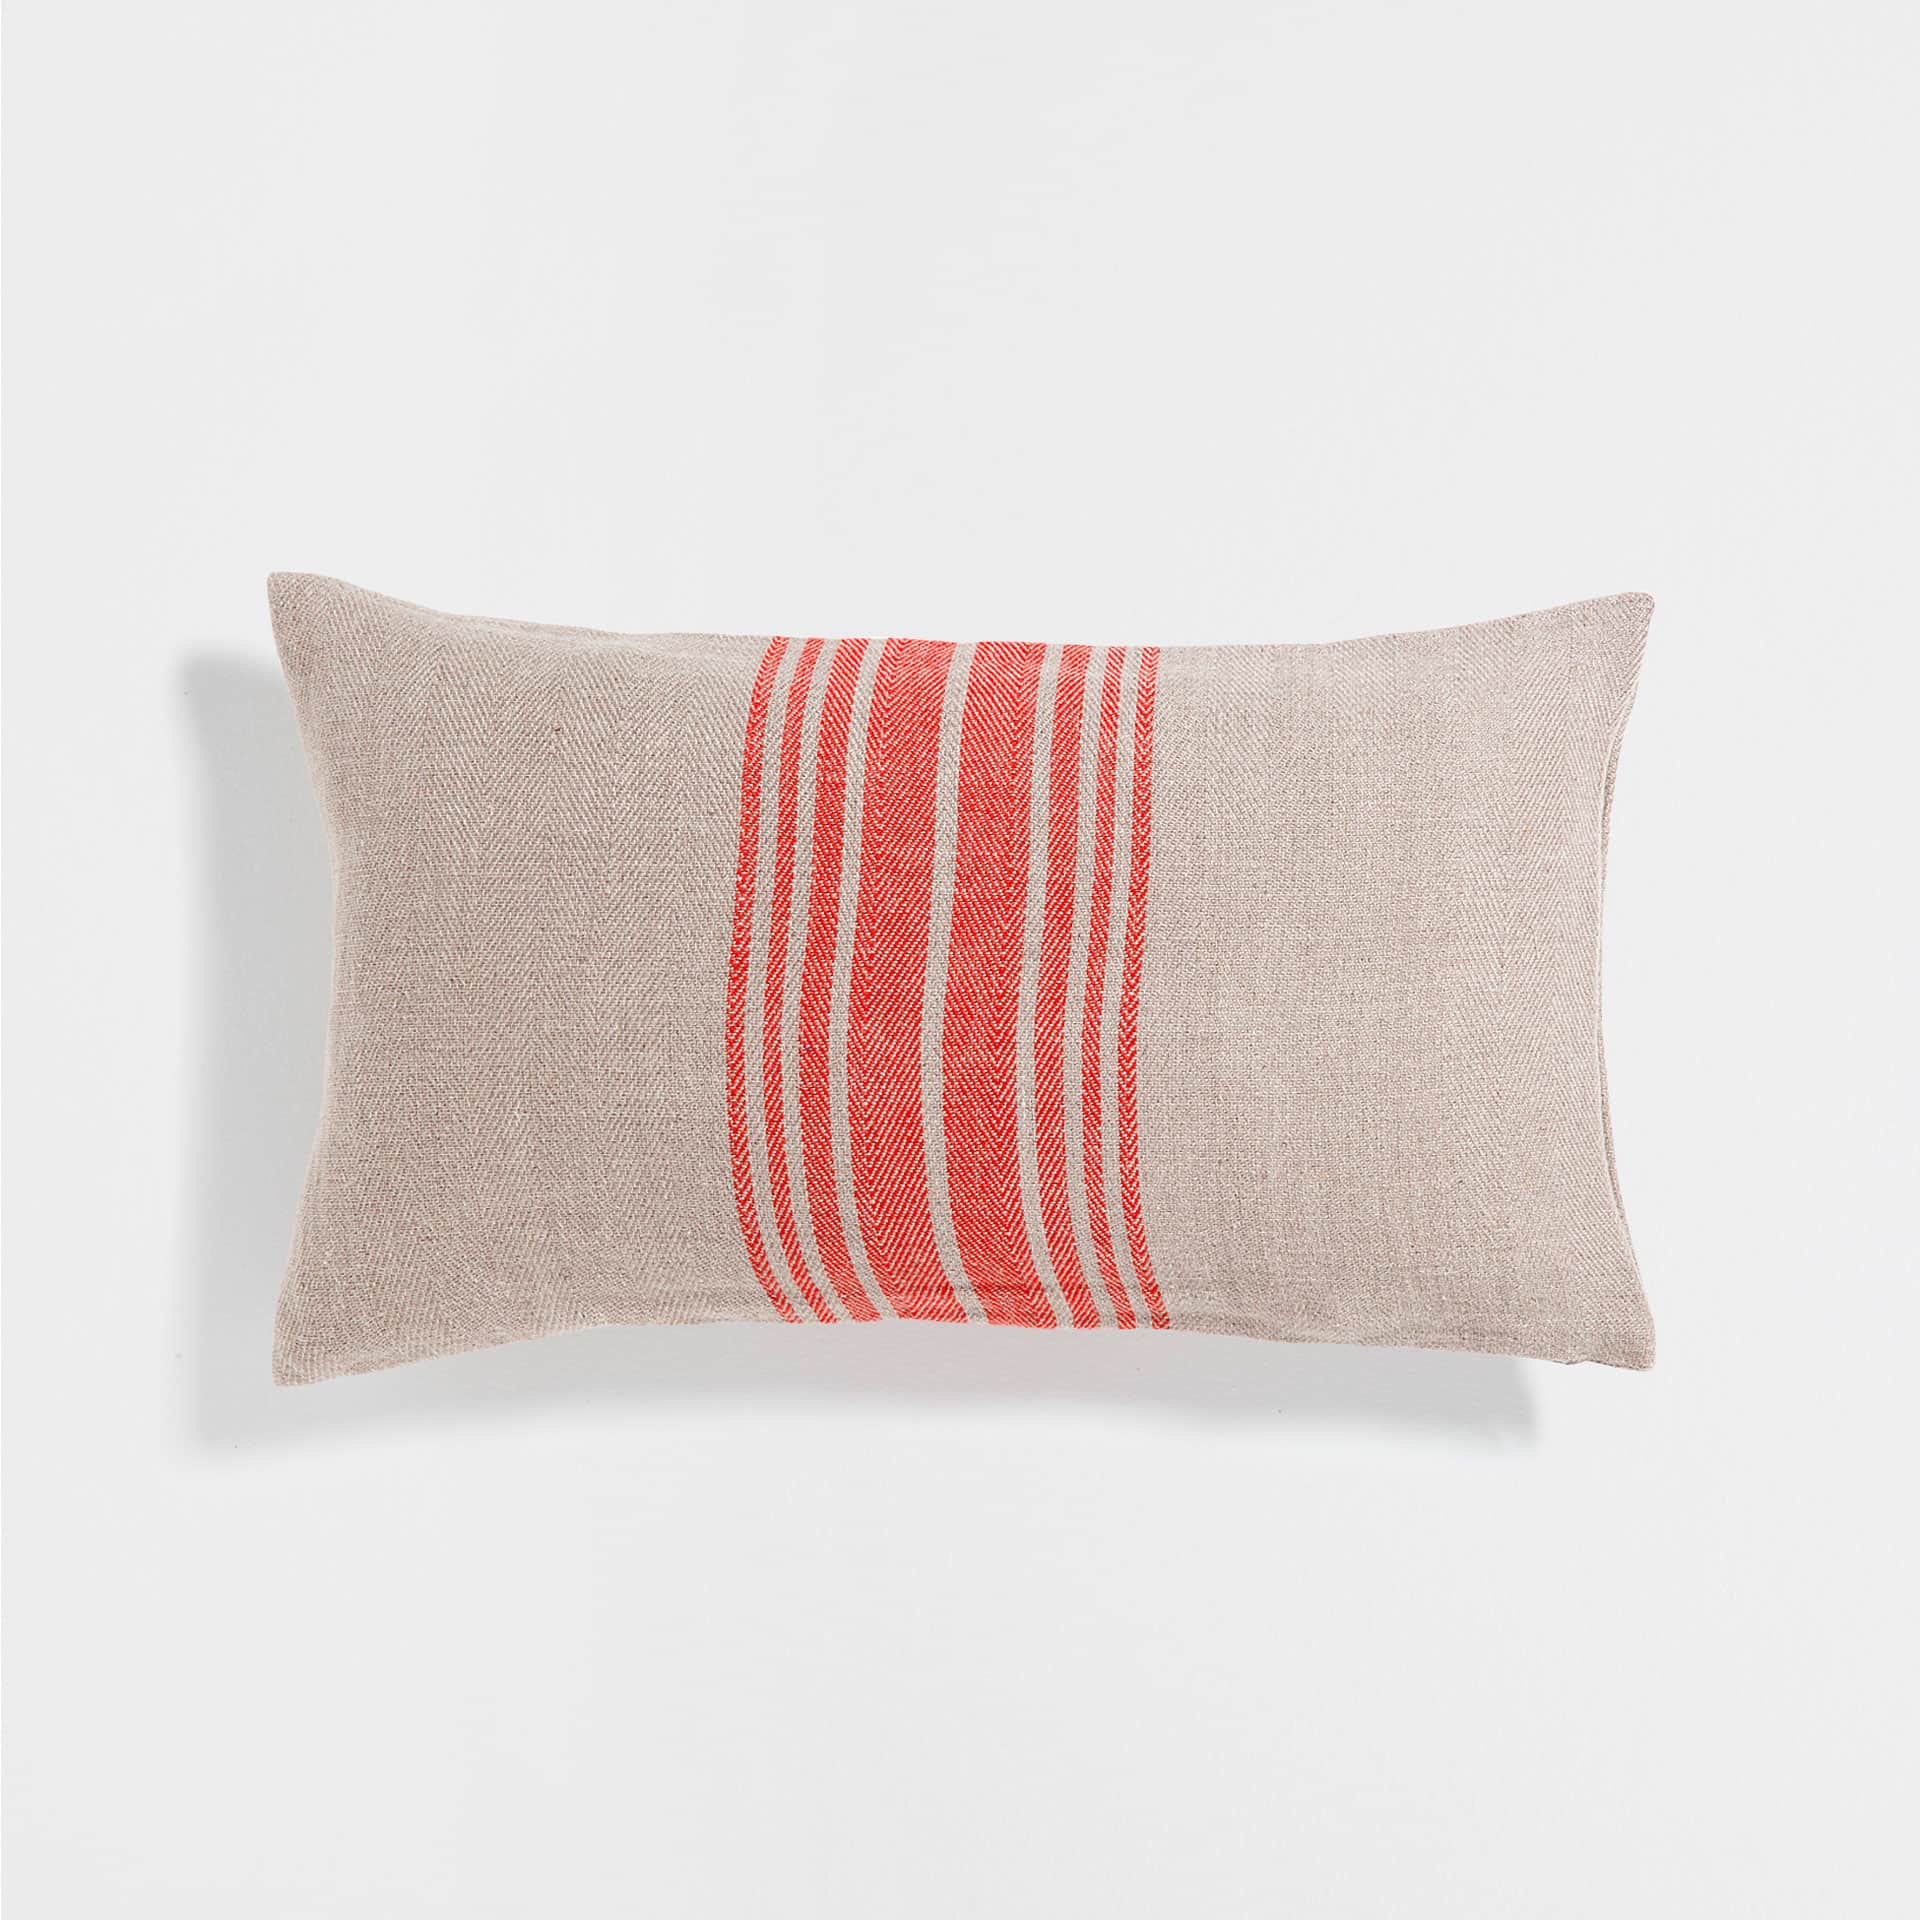 Zara home to open in toronto - Www Zara Home De With Linen Lines Cushion Cushions Decoration Home Collection Aw Also